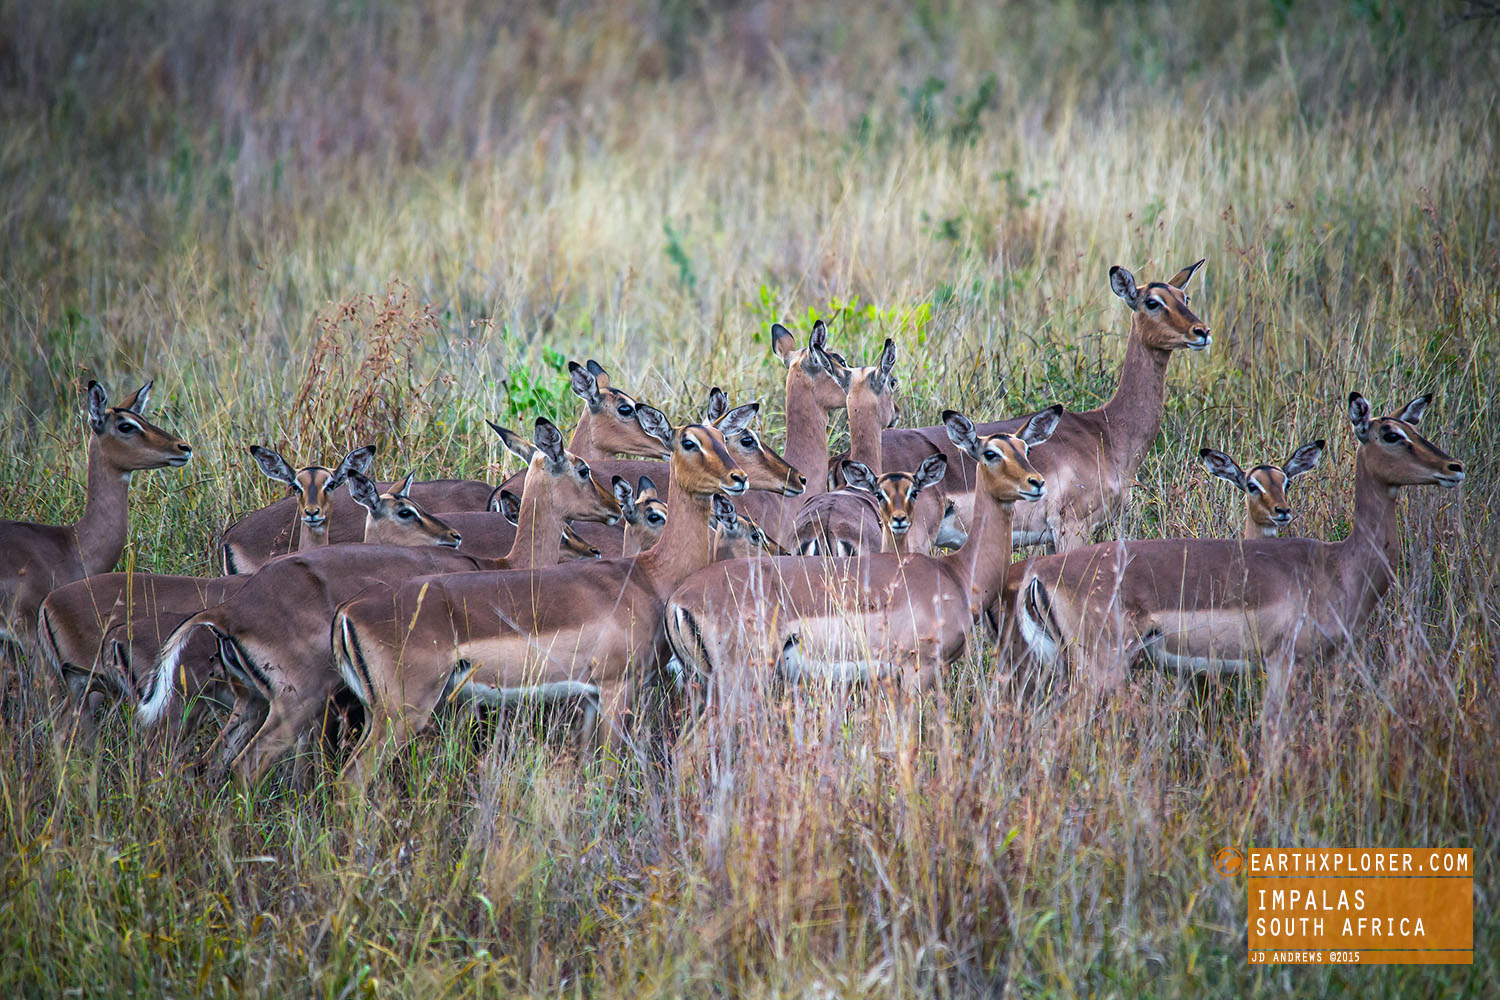 The name 'Impala' come from the Zulu language meaning 'gazelle'